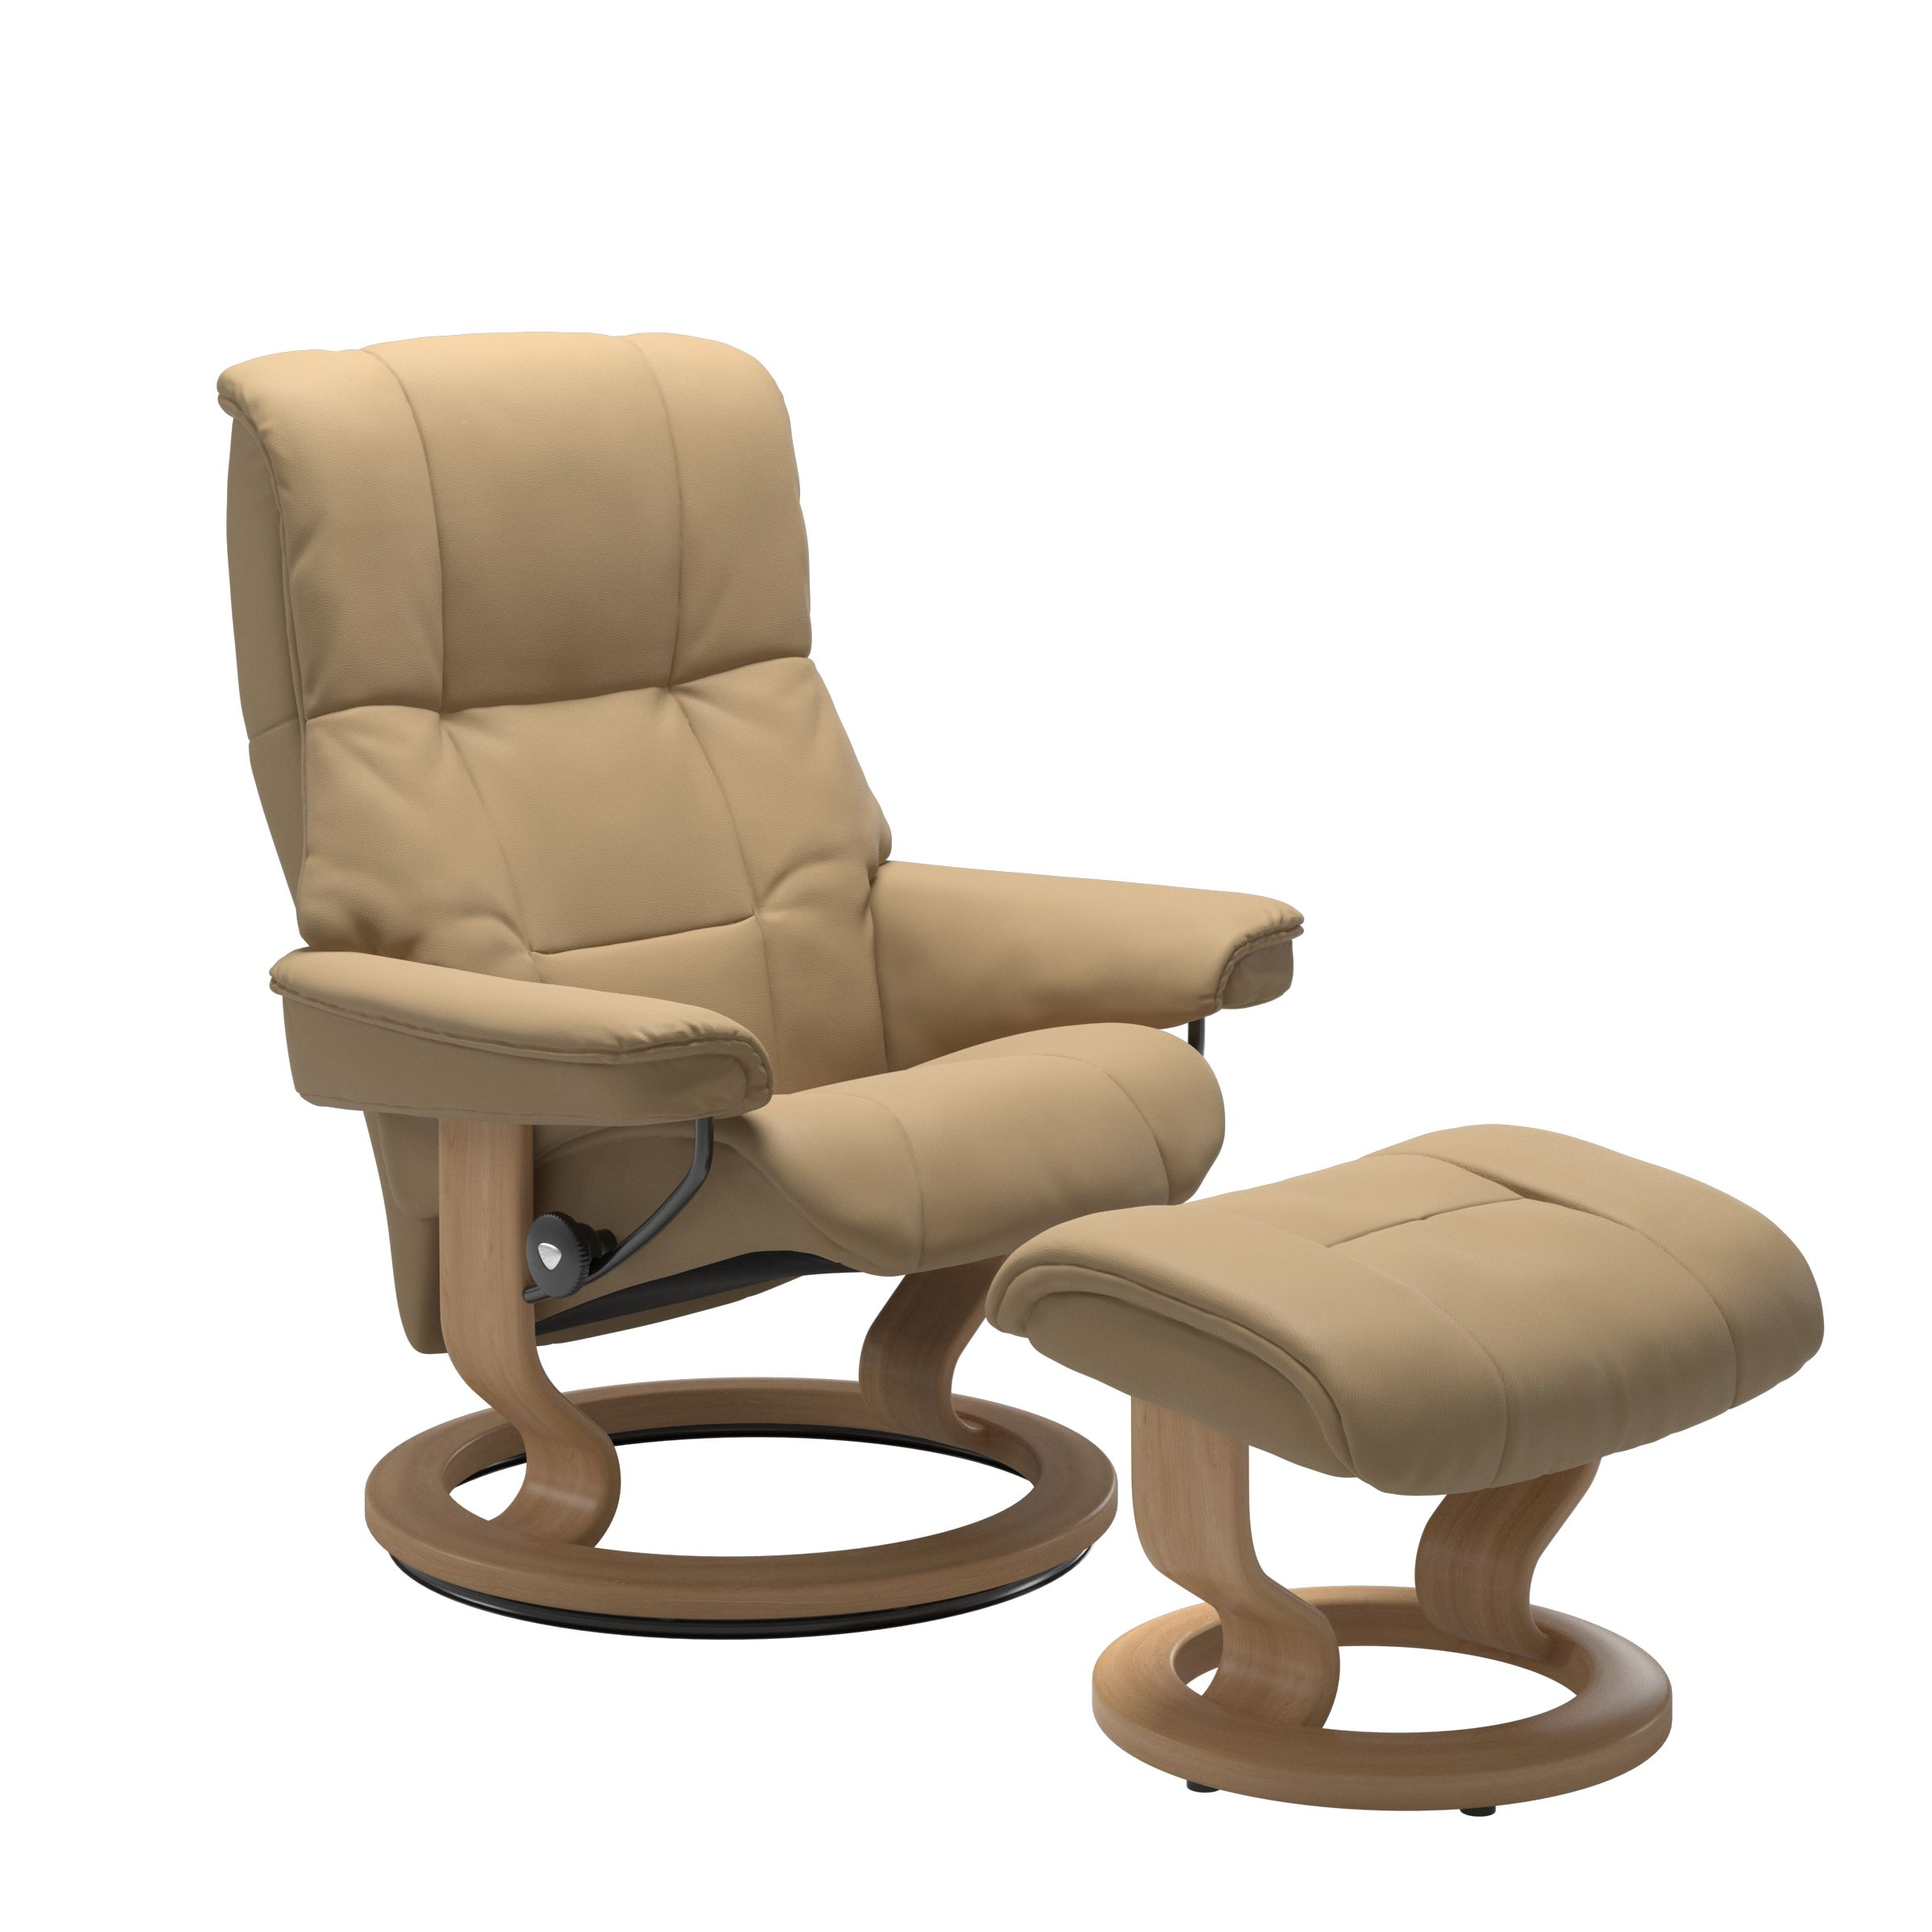 Stressless Mayfair Classic Sand Recliner & Stool